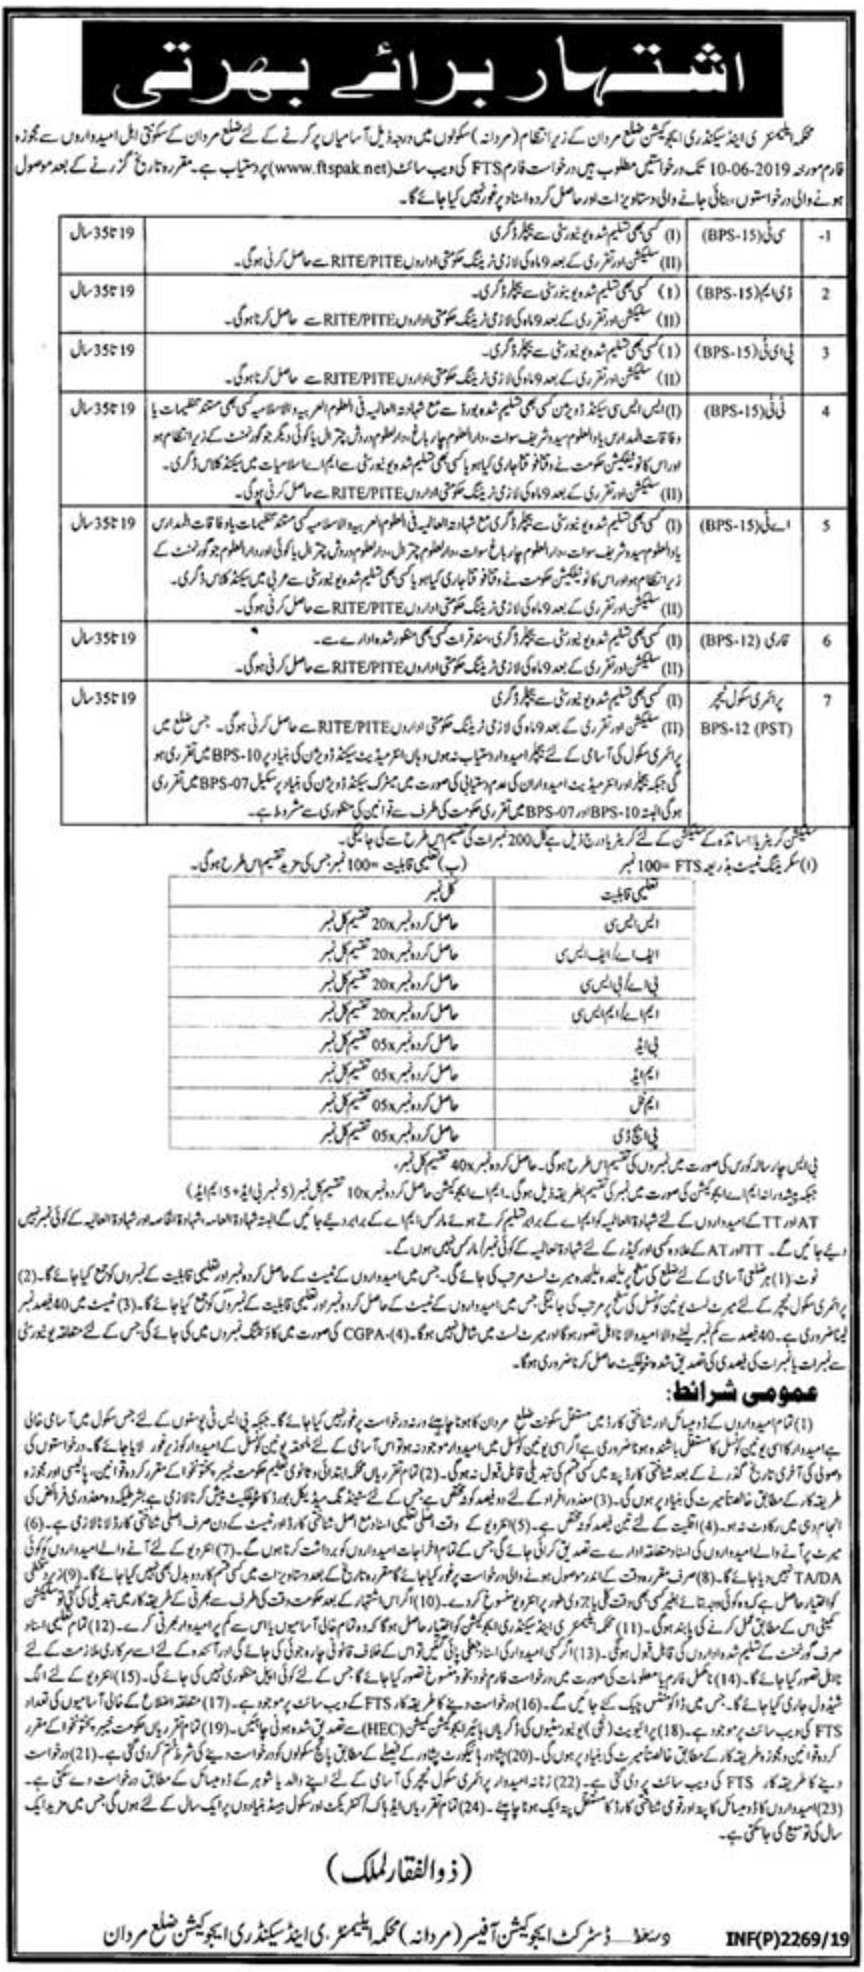 Elementary & Secondary Education Department ESED KPK Jobs 2019 Mardan